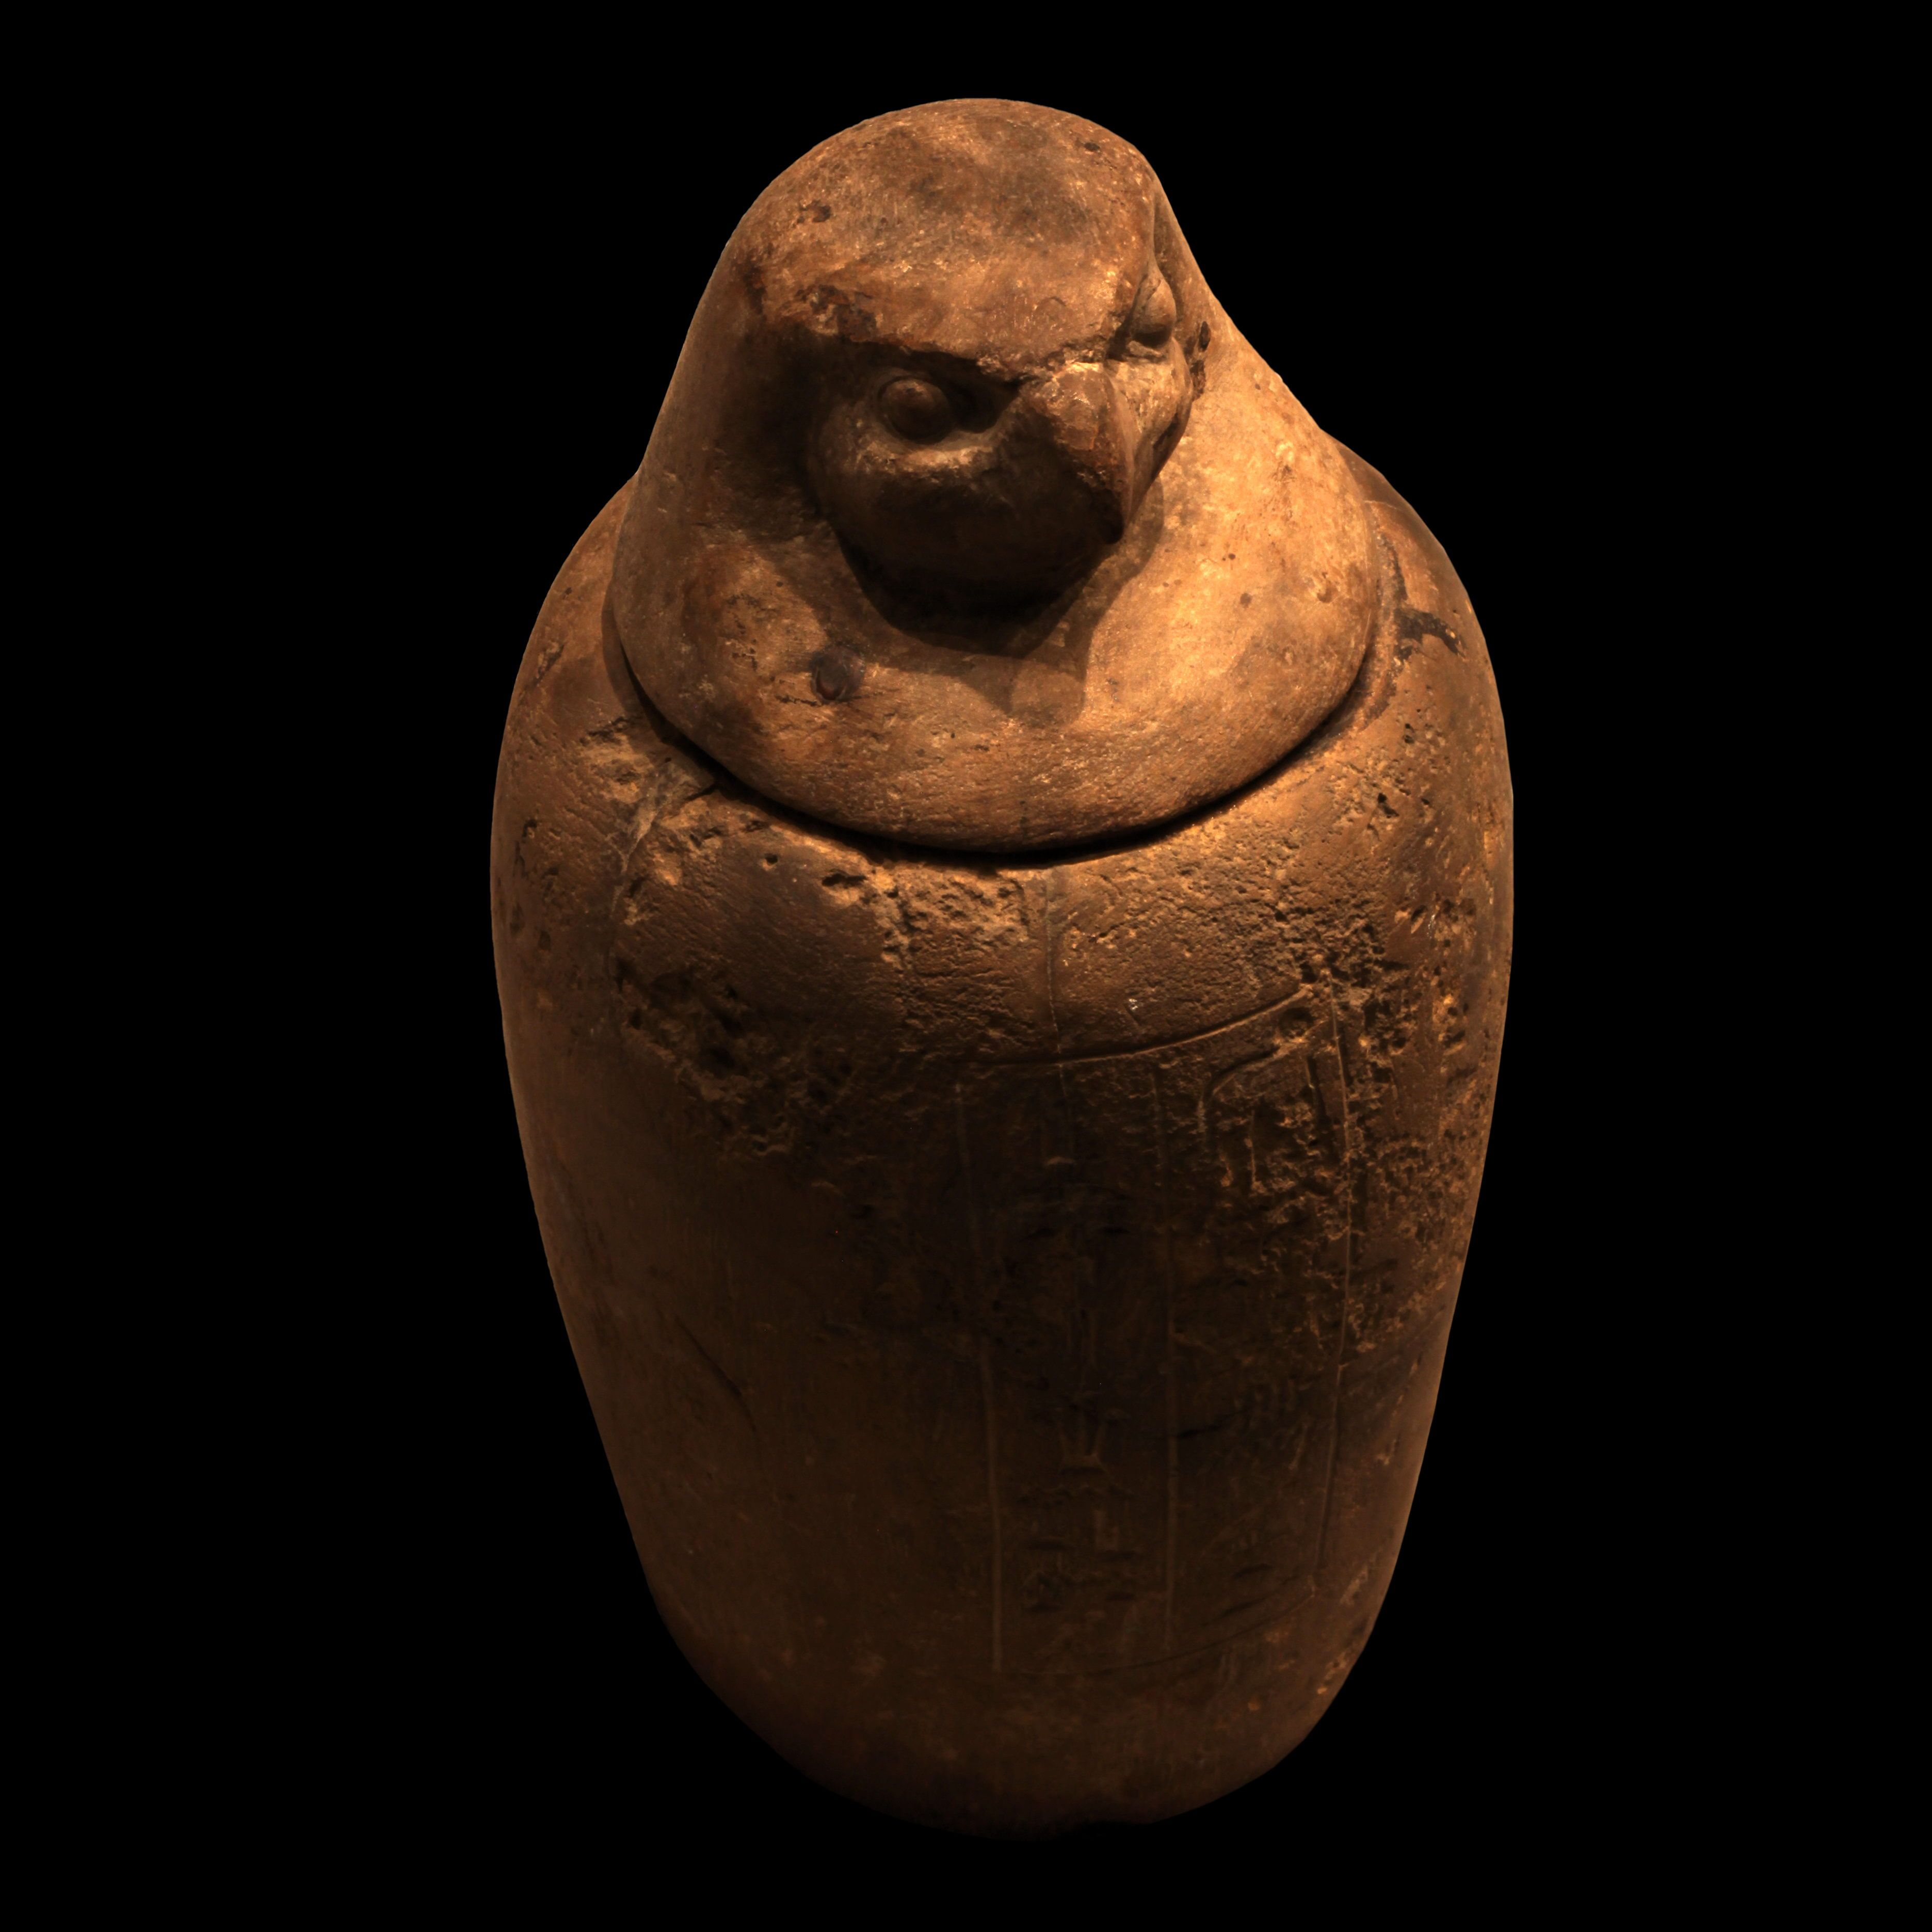 Horus canopic jar you know, for your mummy bits